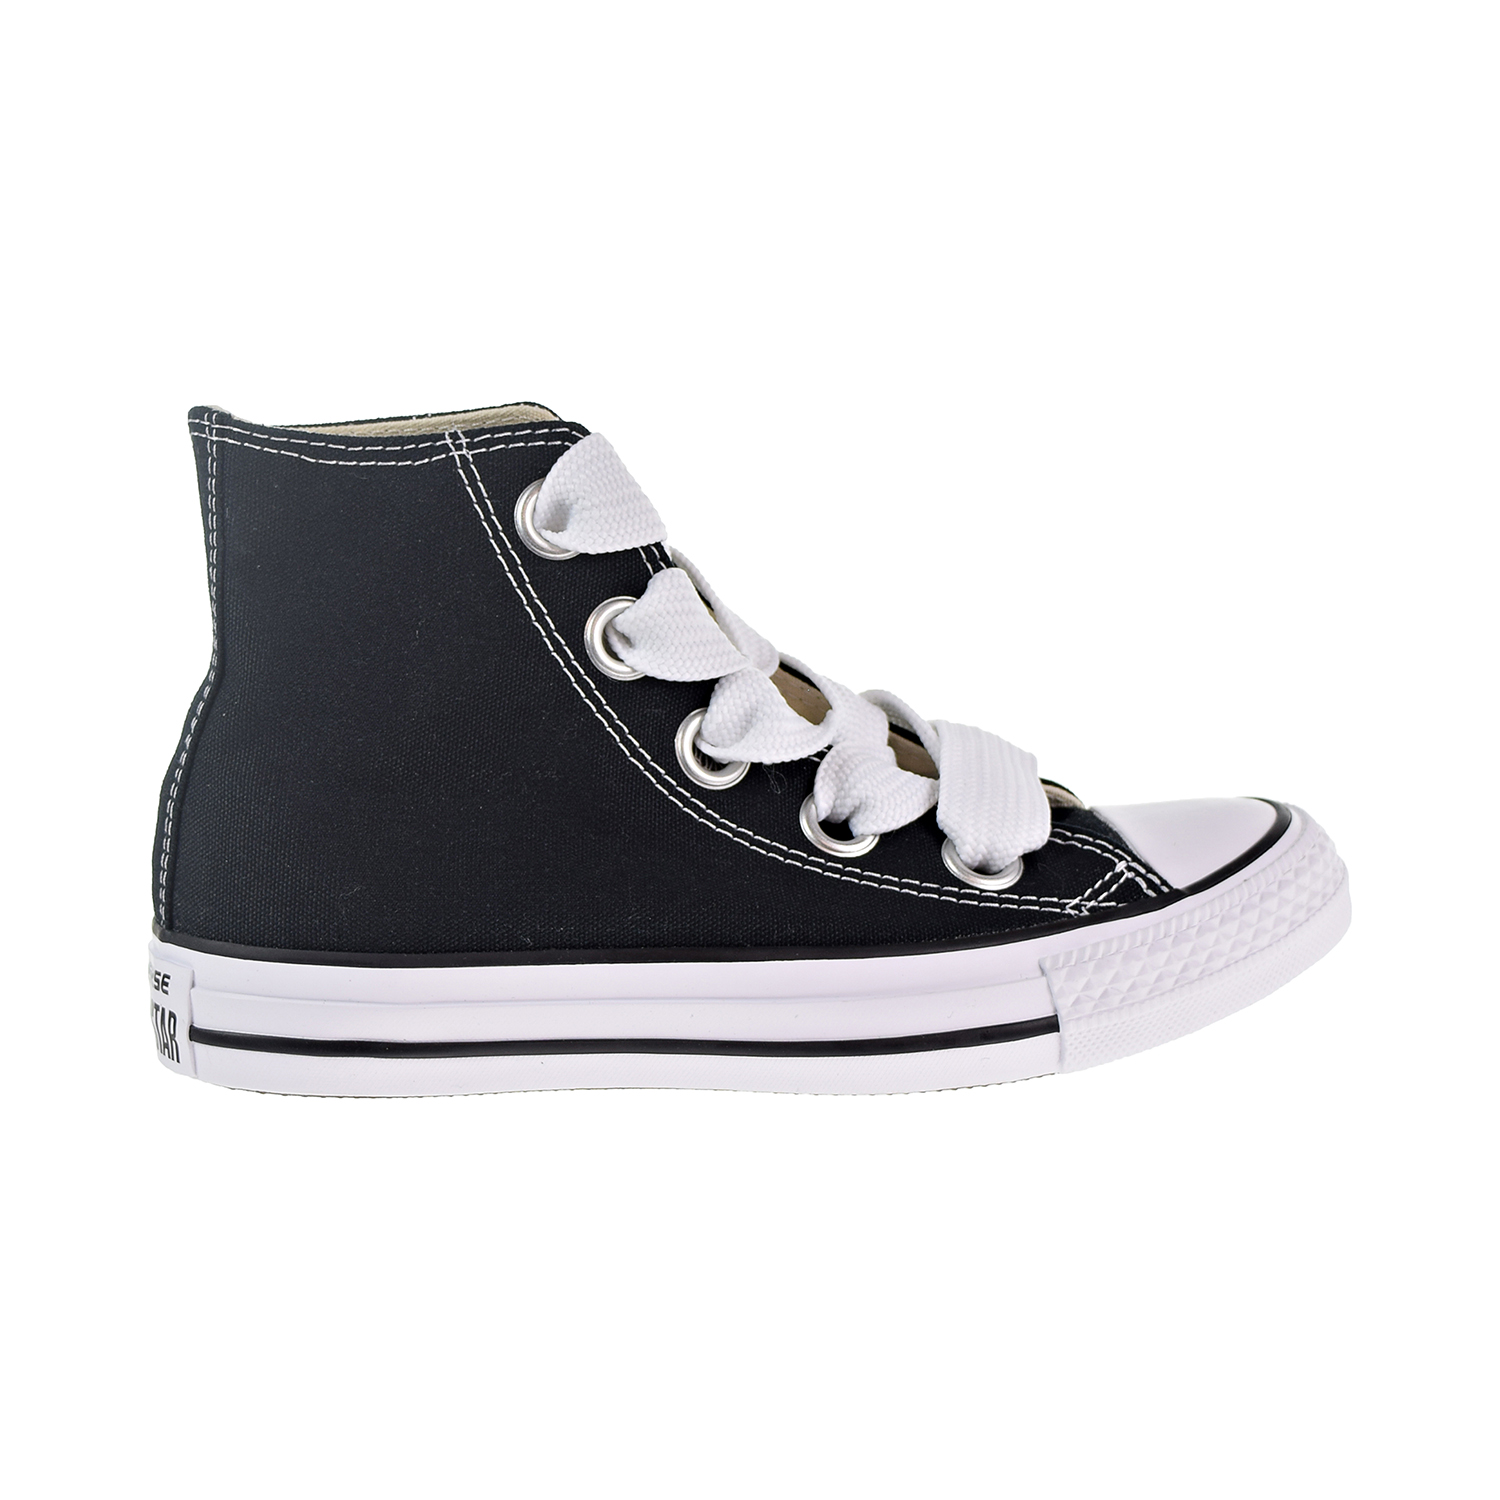 7cd4a91eec33 Details about Converse Chuck Taylor All Star Big Eyelets Hi Women s Shoes  Black White 559934c